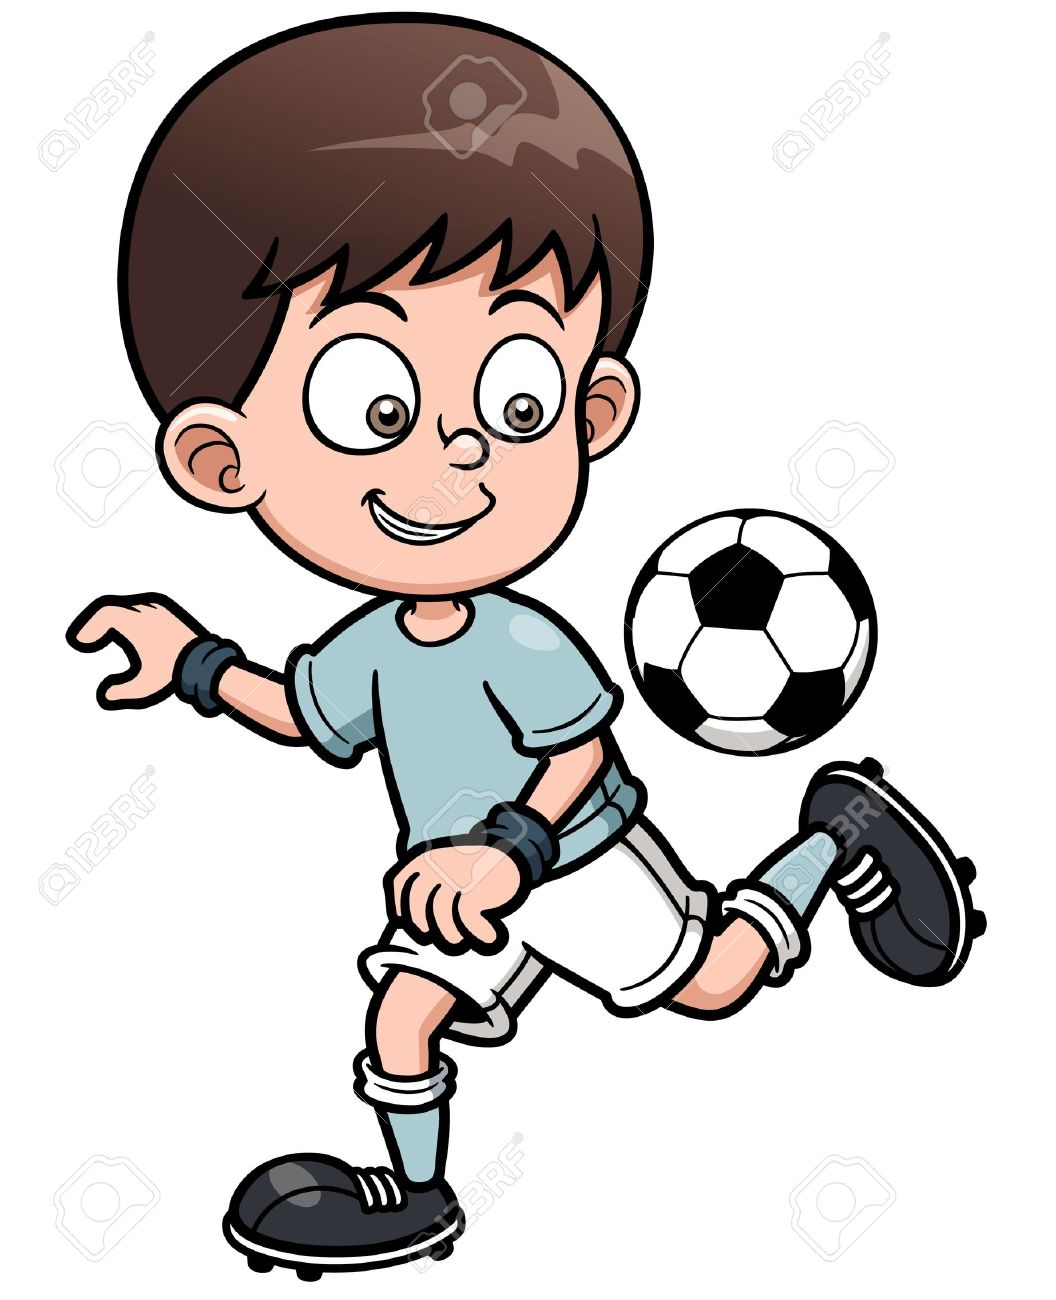 Boy soccer player clipart 4 » Clipart Station.